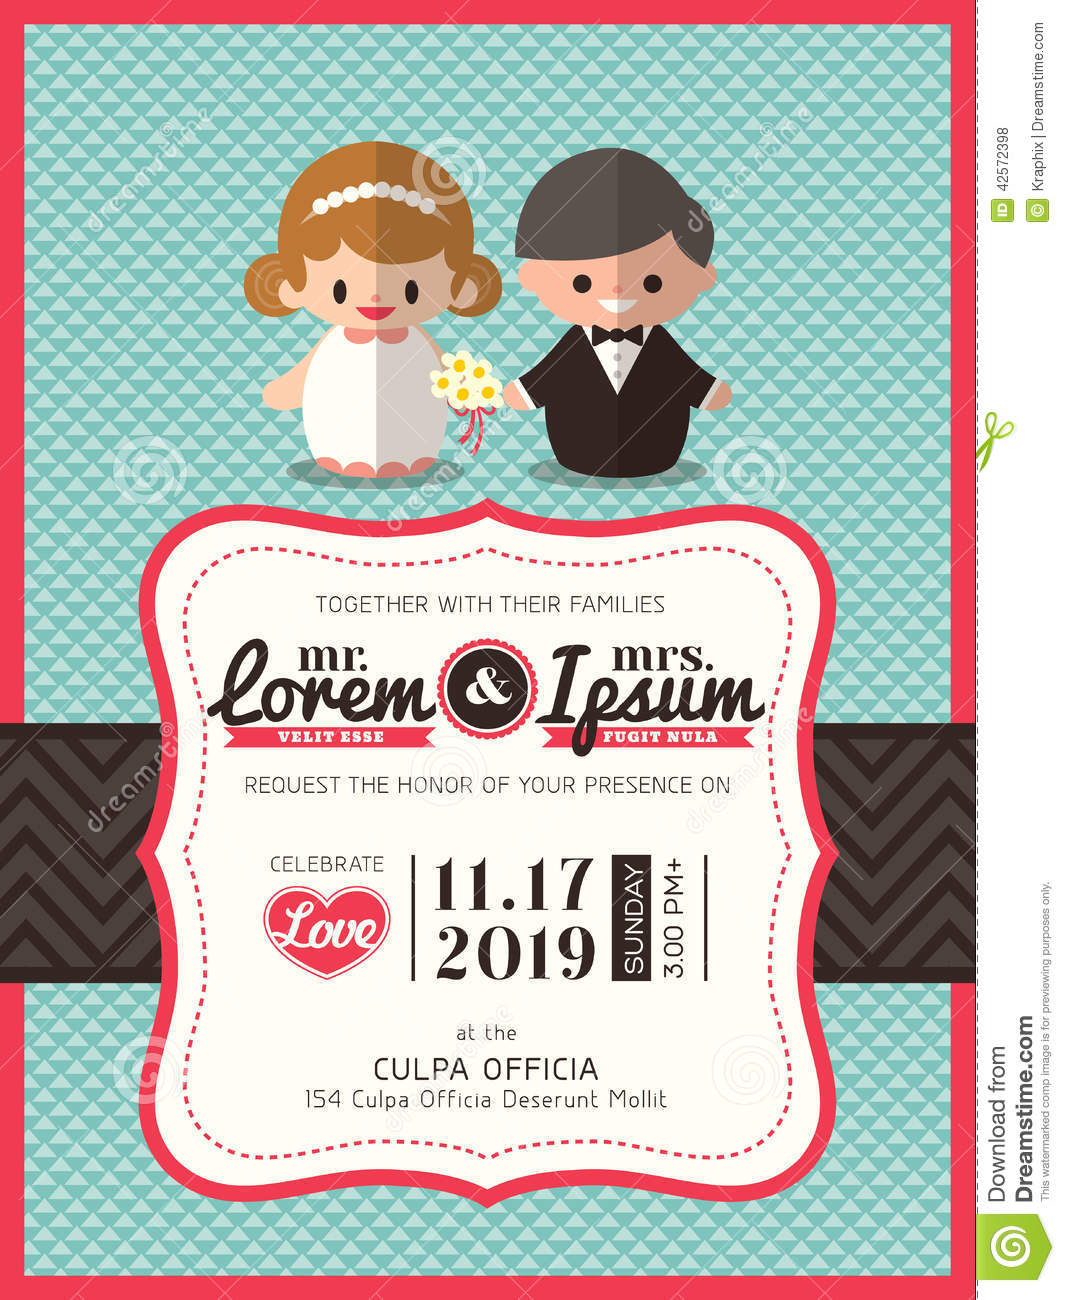 Wedding Invite Card Template With Groom And Bride Cartoon Stock Vector ...